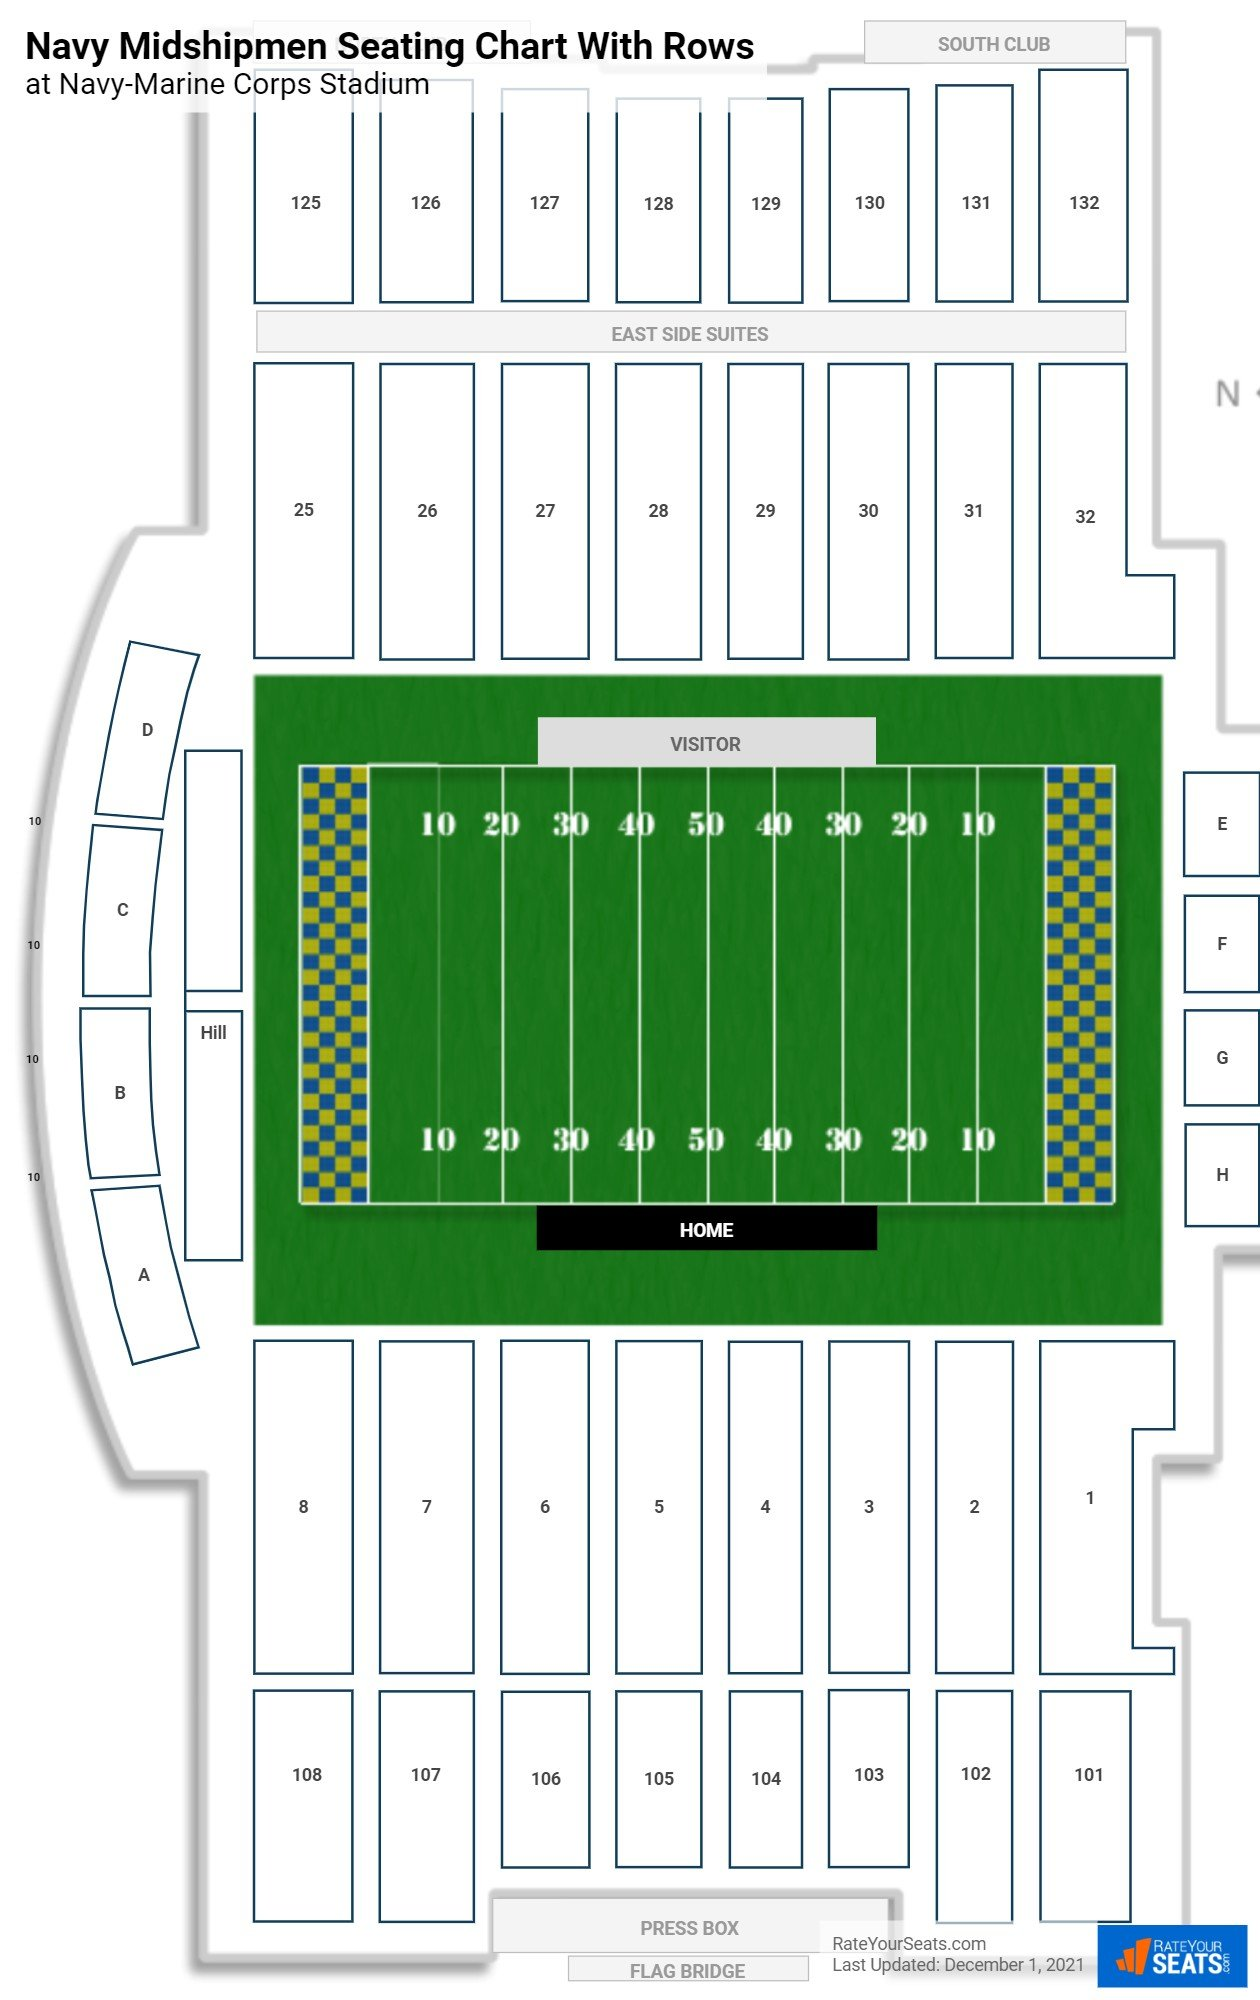 Navy-Marine Corps Stadium seating chart with rows